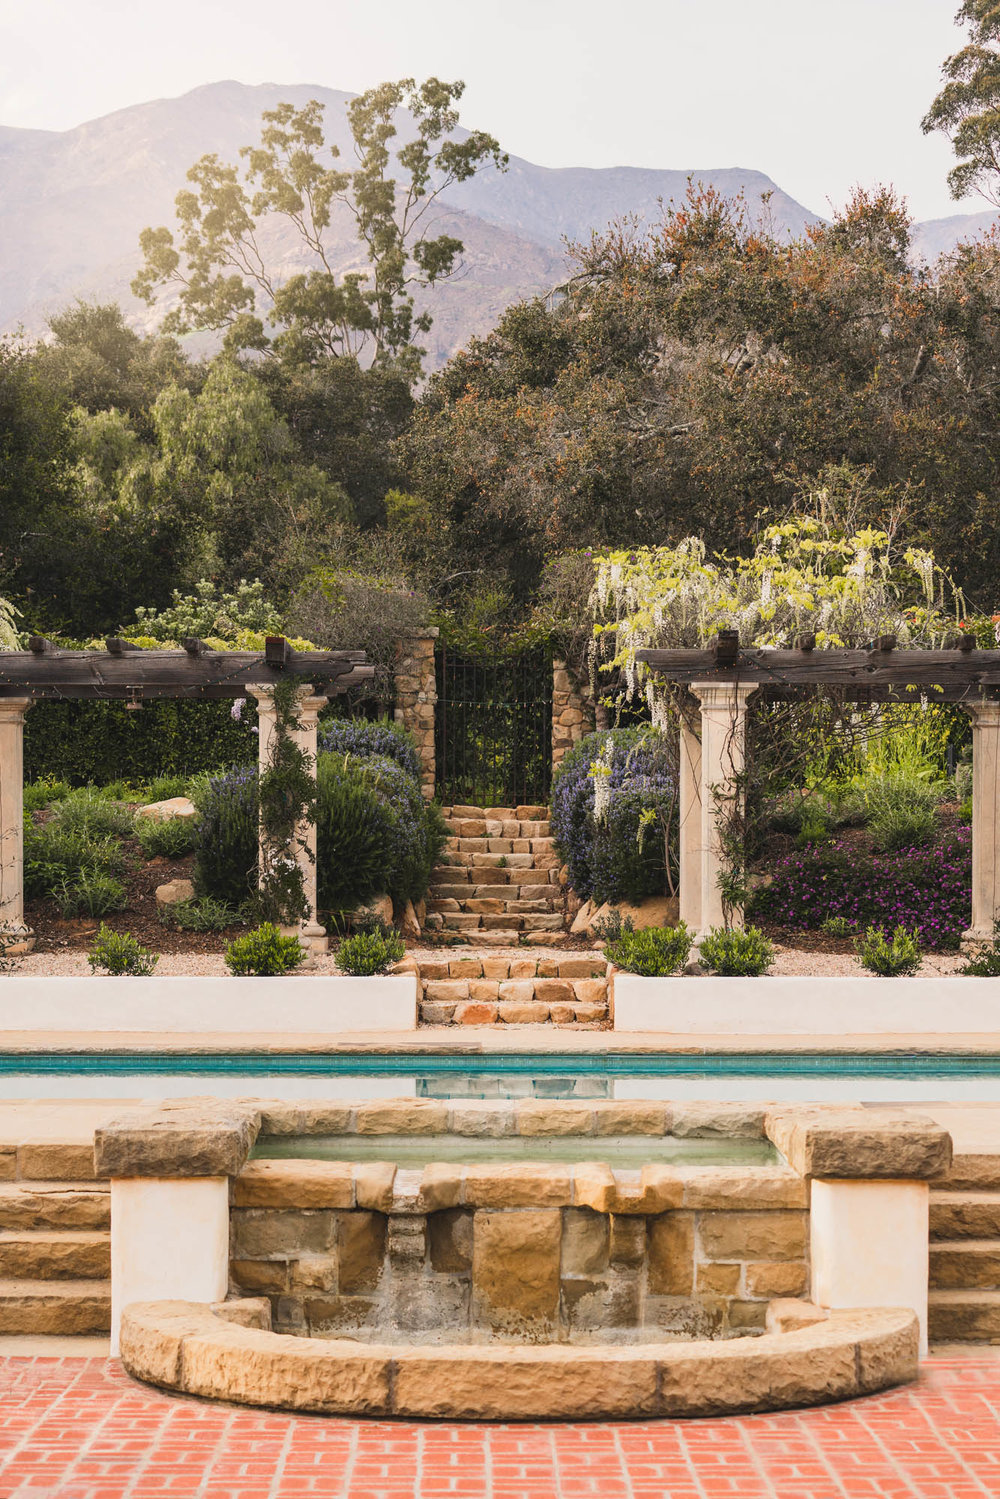 -31.4% YTD - Year to date Montecito is down 31.4% compared to 2017, with 87 properties sold.Click here to view the Montecito properties sold YTD.